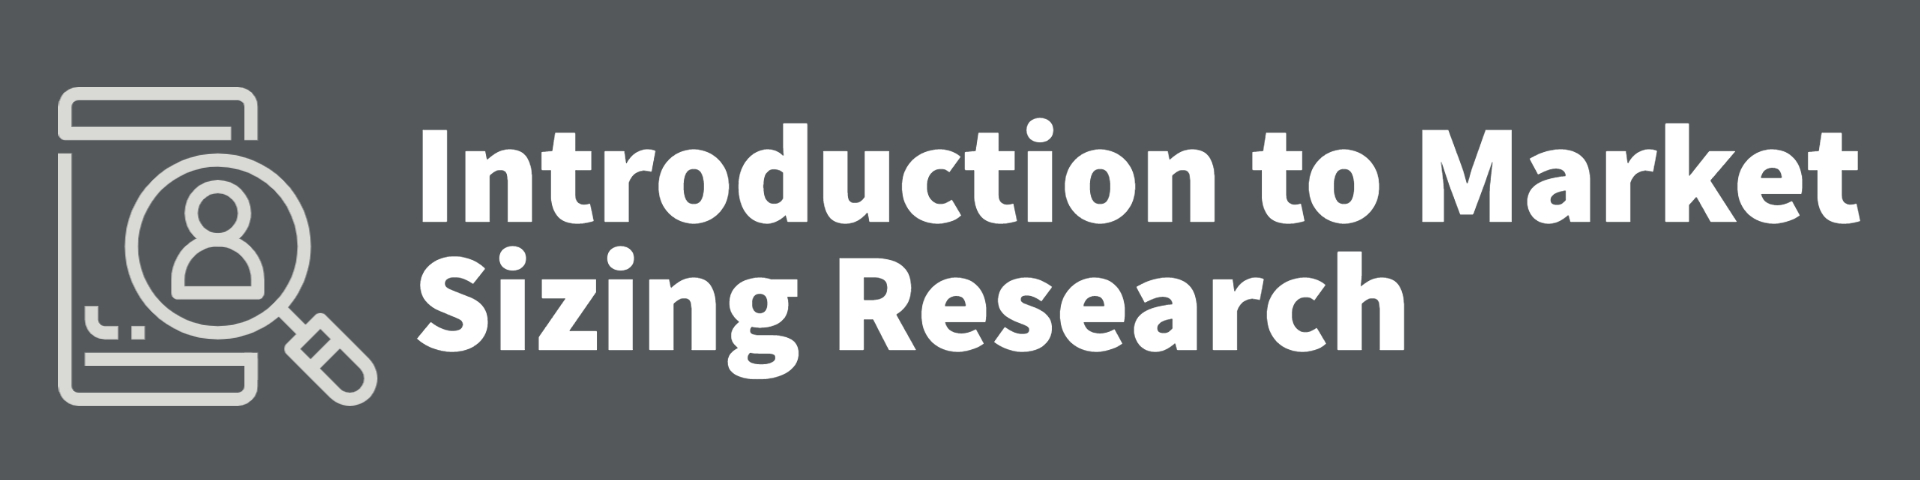 Introduction to Market Sizing Research